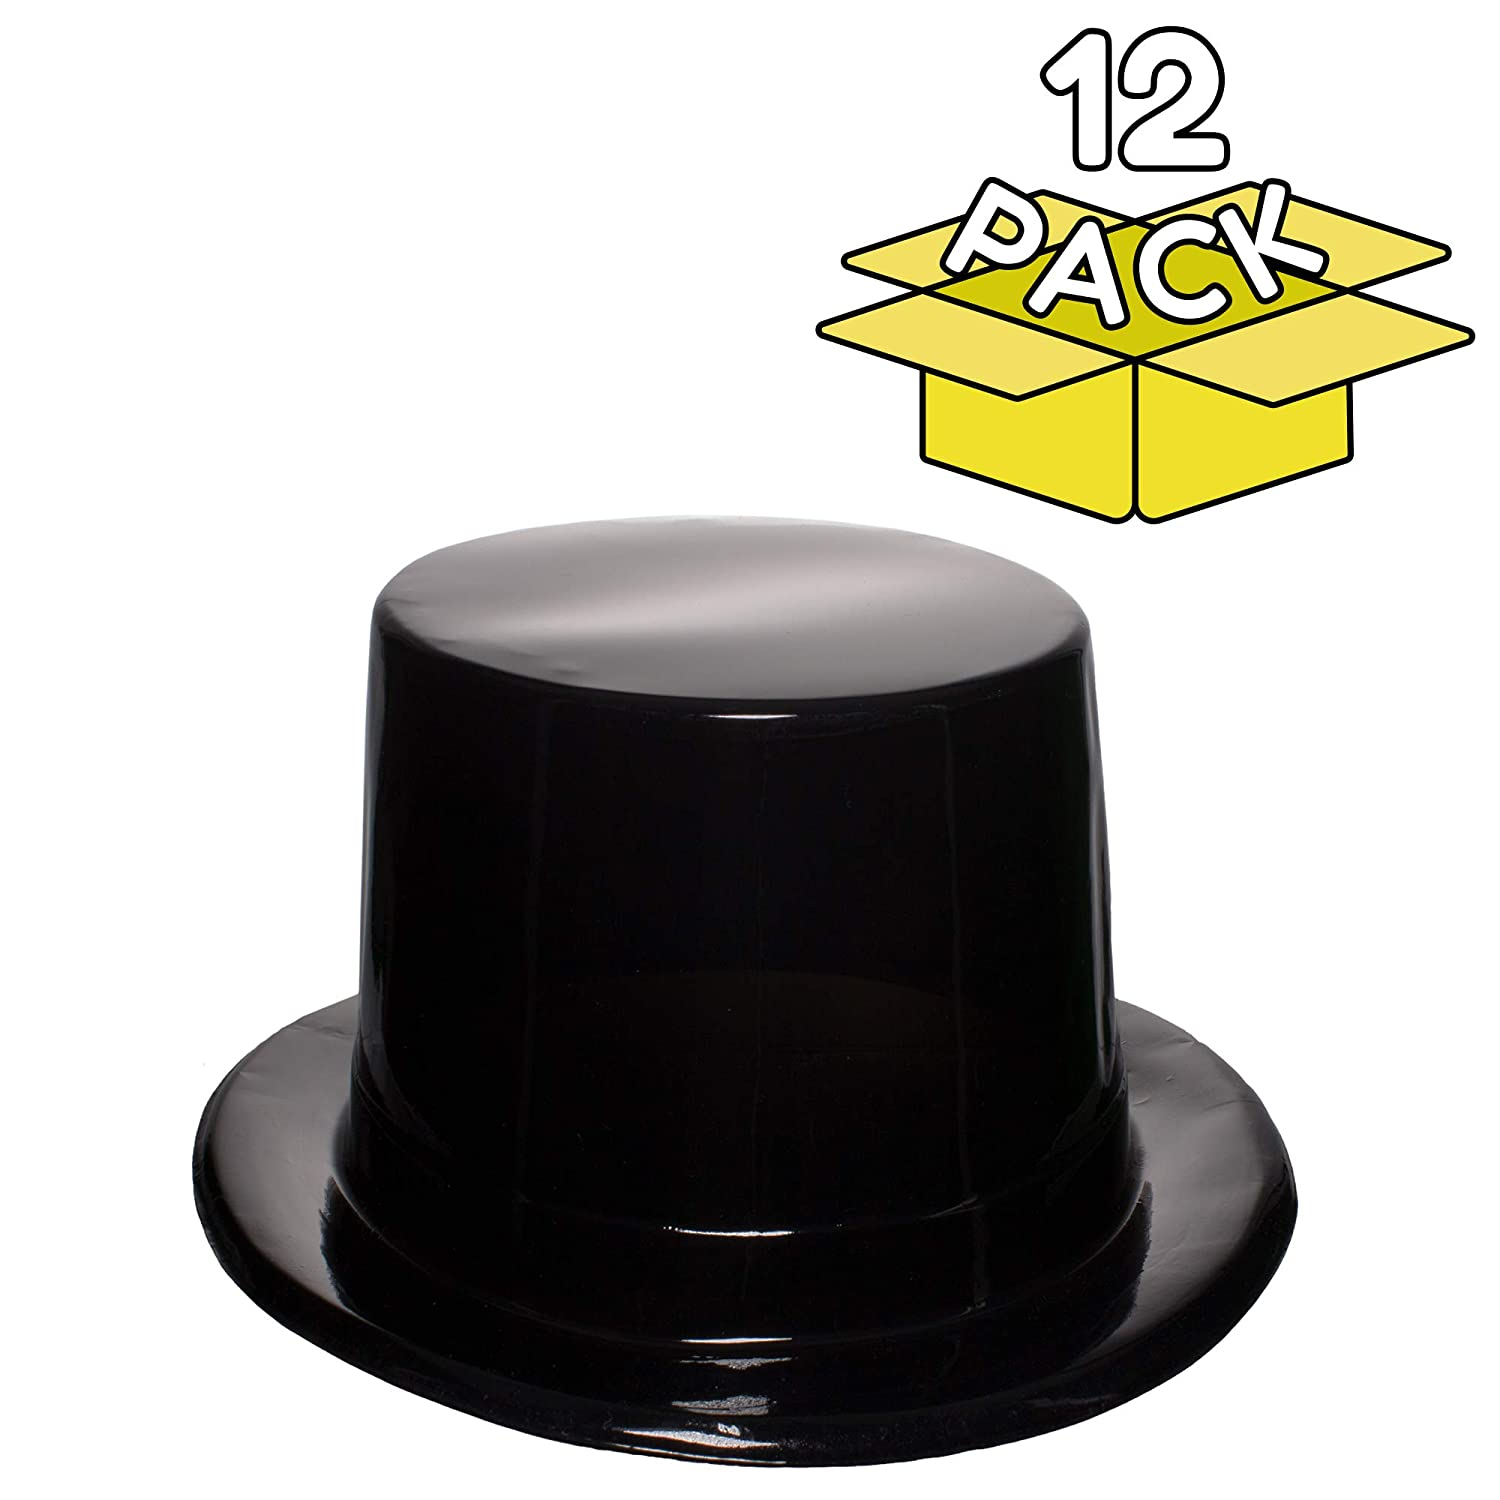 Amazon.com  Black Plastic Top Hats - 12 Pack  Kitchen   Dining 168eb3b43bcd